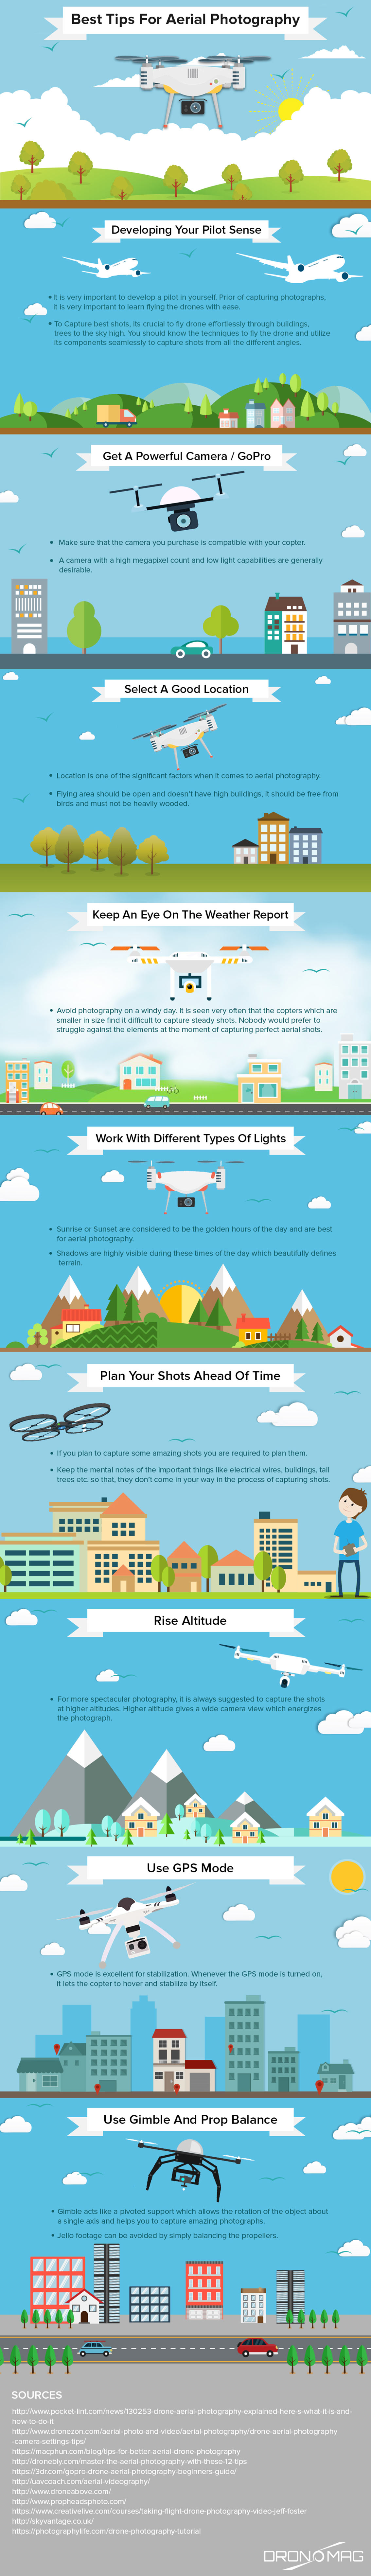 Tips for Using Drone for Aerial Photography Infographic